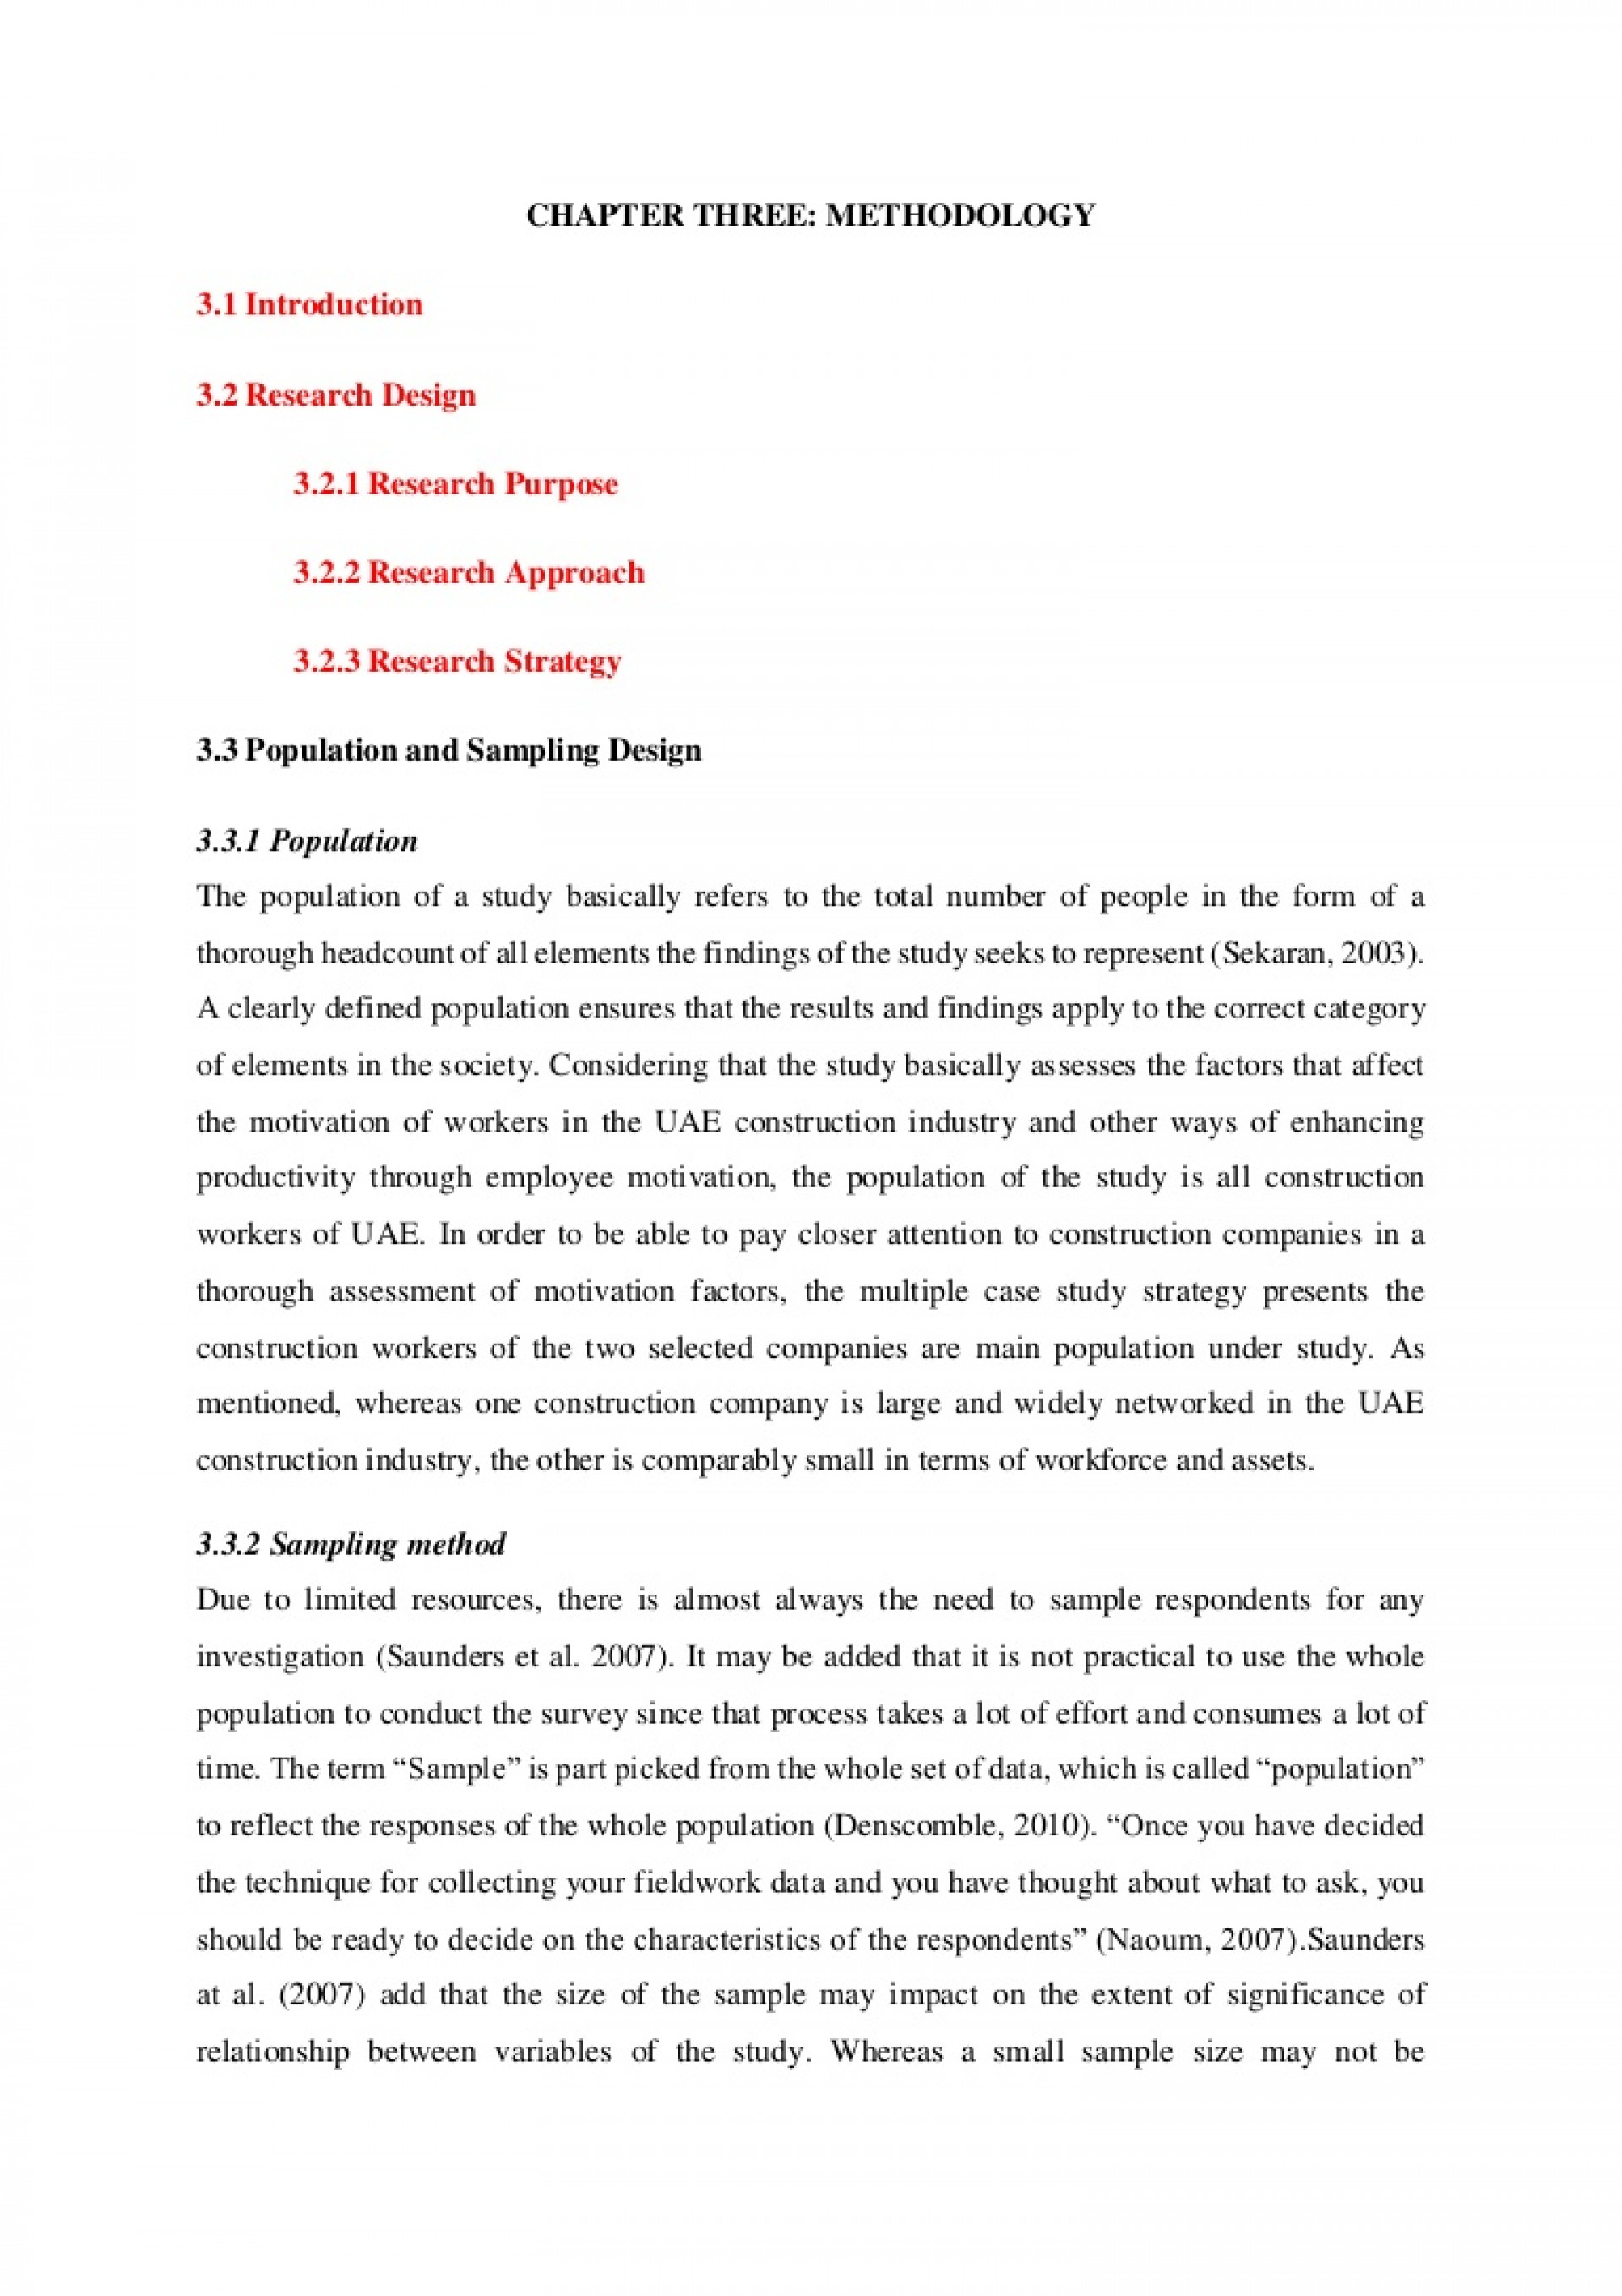 001 Conclusion Of Research Methodology Paper Samplestudy Conversion Gate02 Thumbnail Beautiful Chapter Hypothesis In 1920